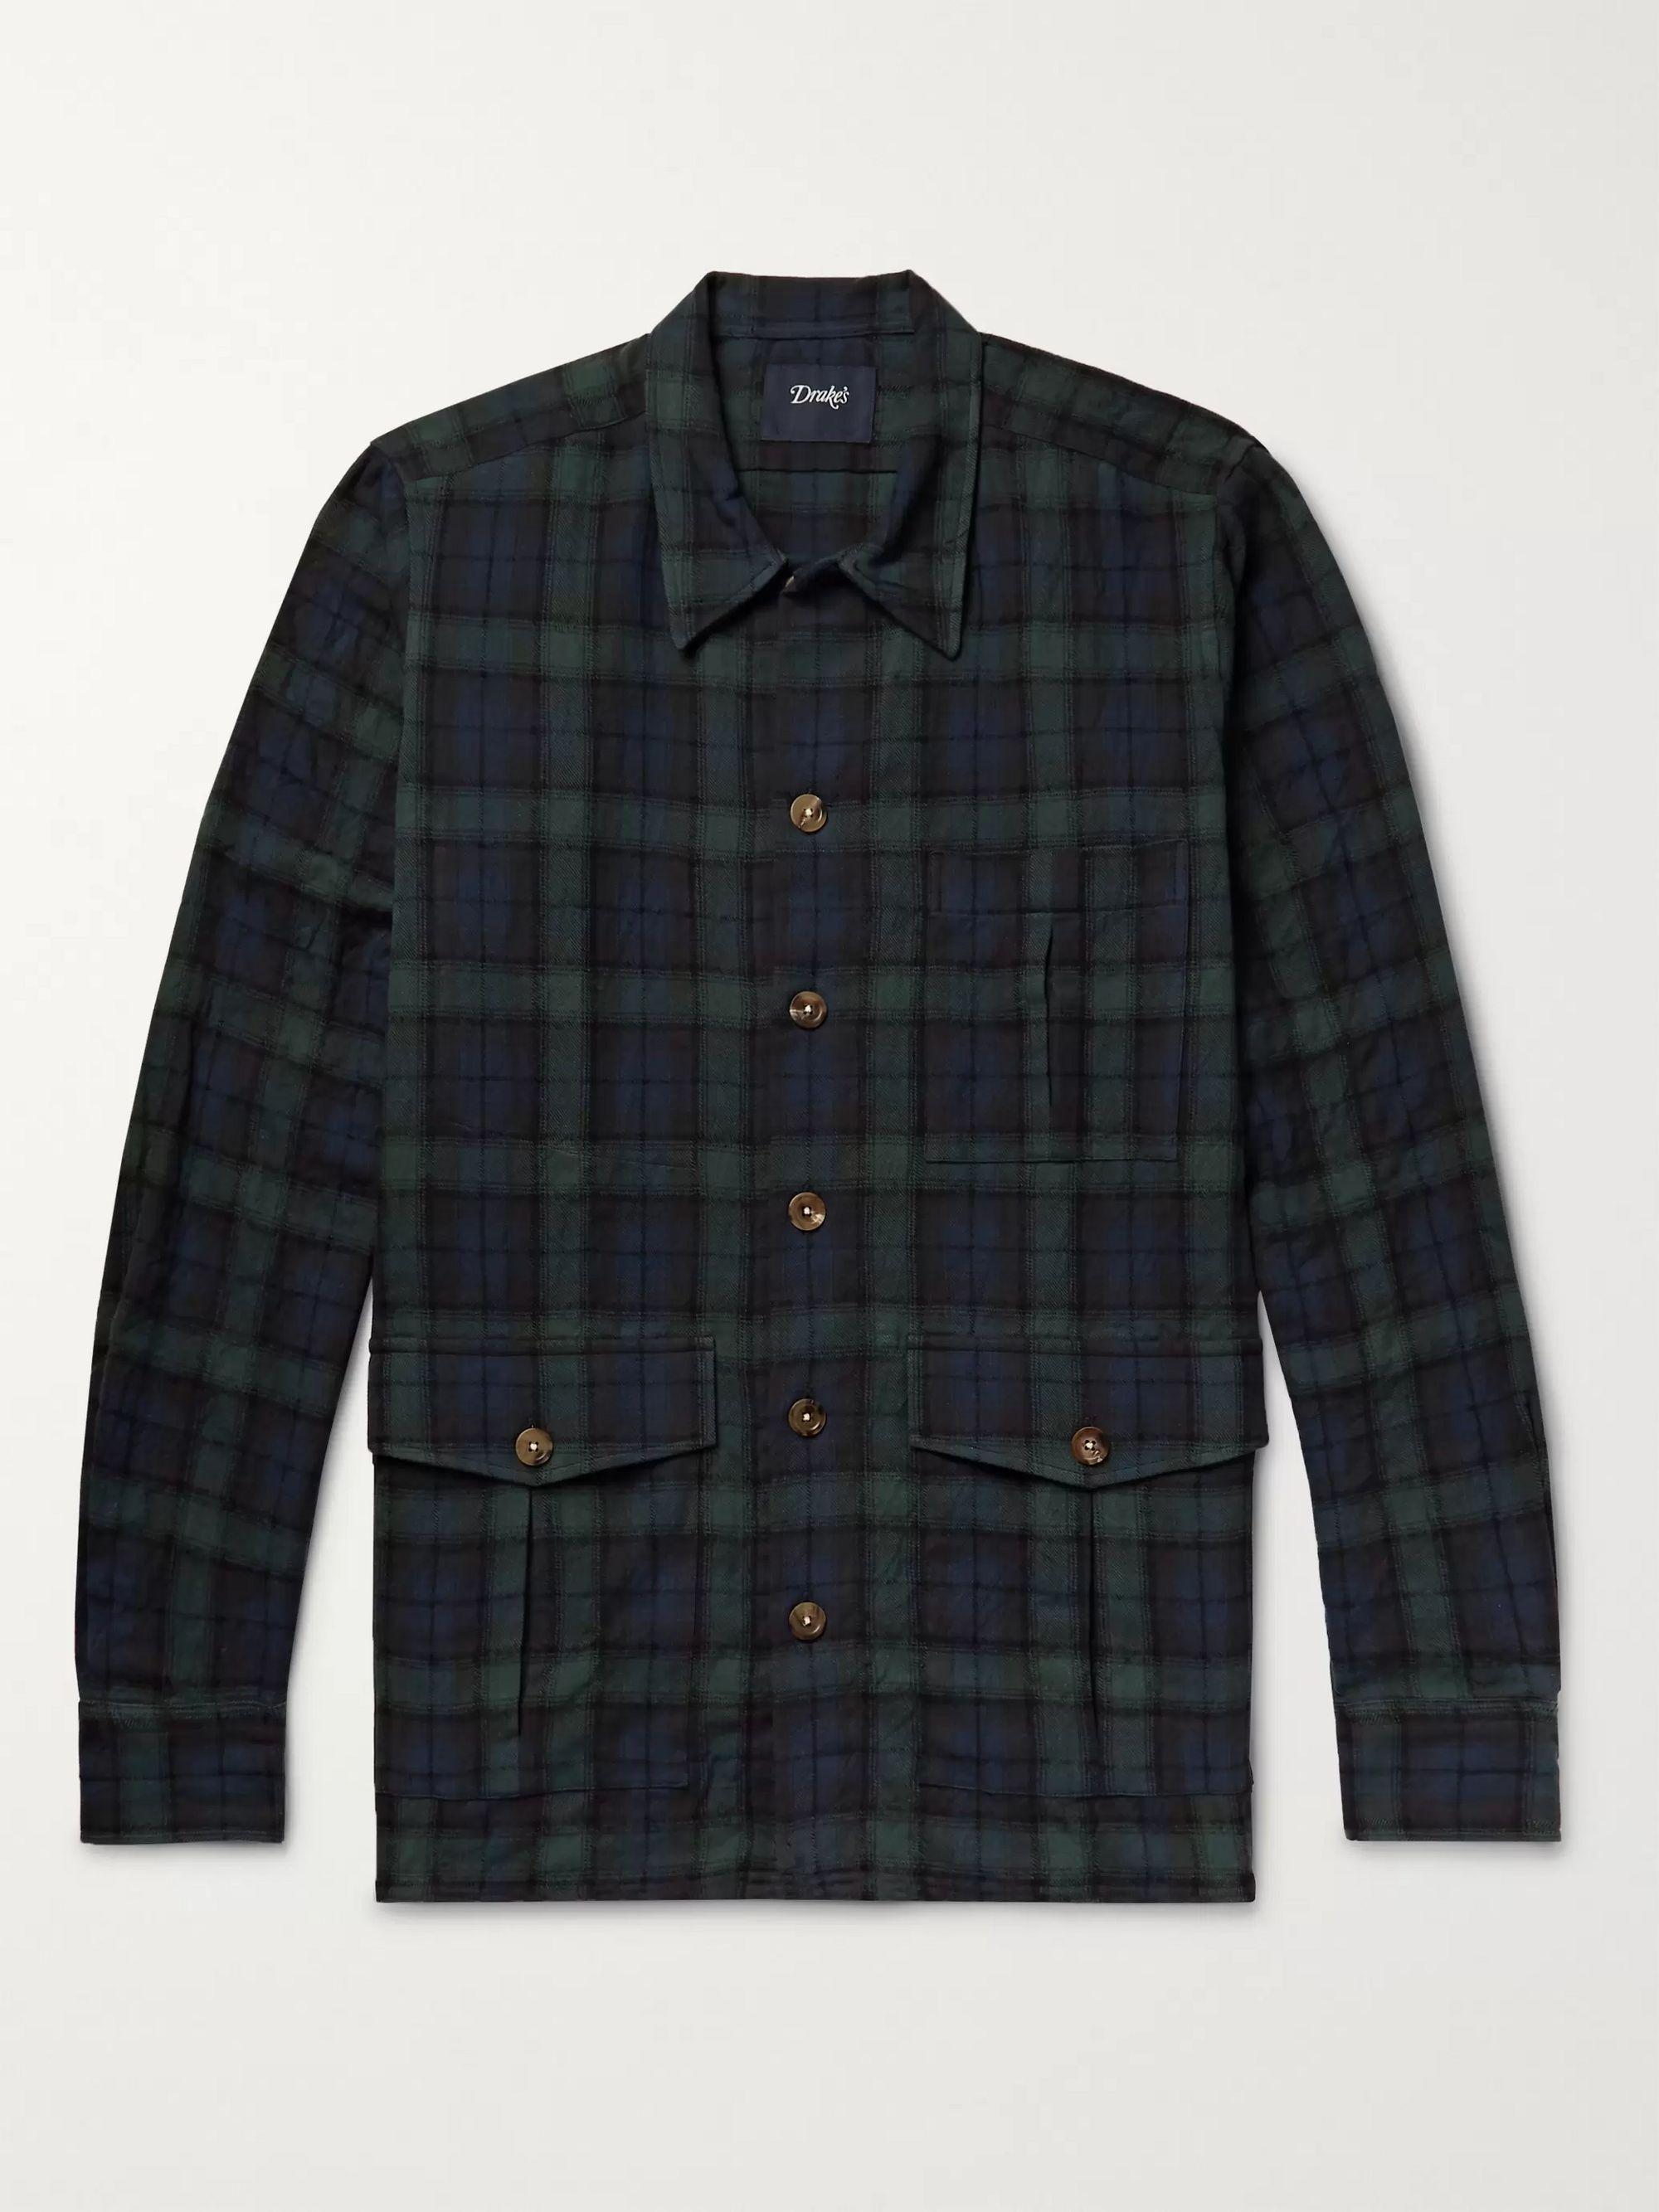 Blackwatch Checked Cotton And Wool Blend Flannel Overshirt by Drake's